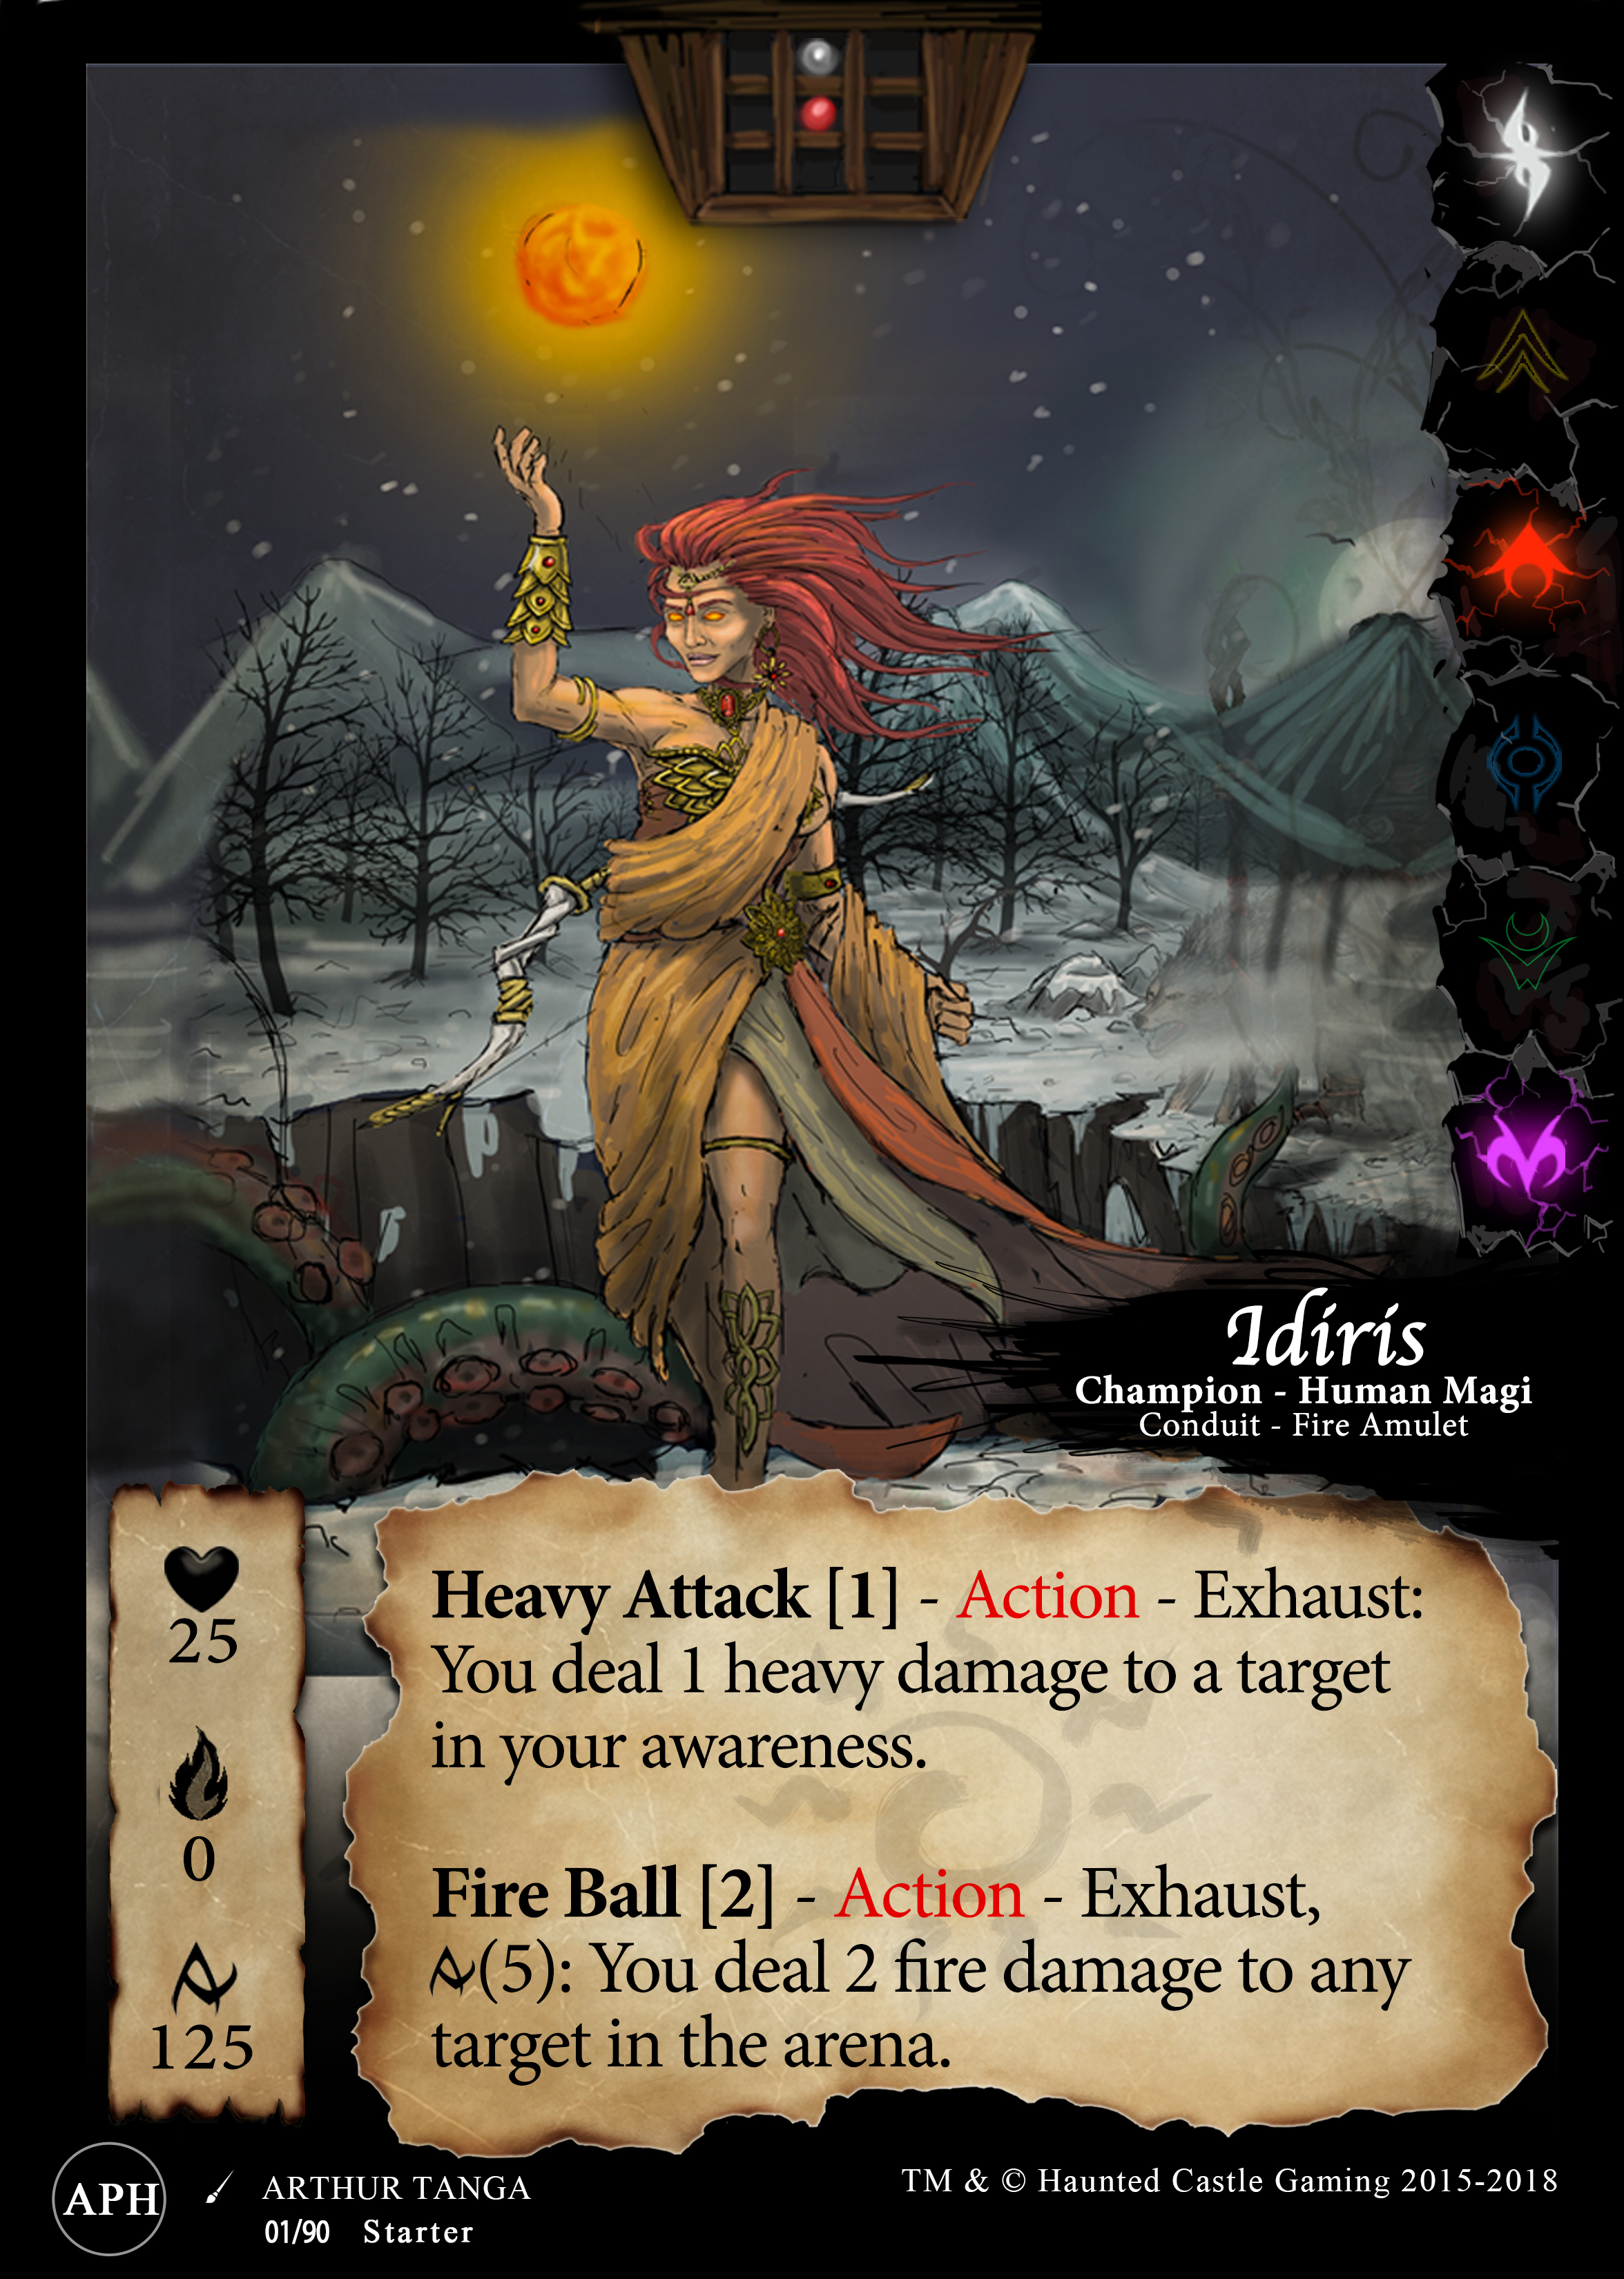 No, it does not... - She can target any one thing within the whole arena with her Fire Ball [2] ability.